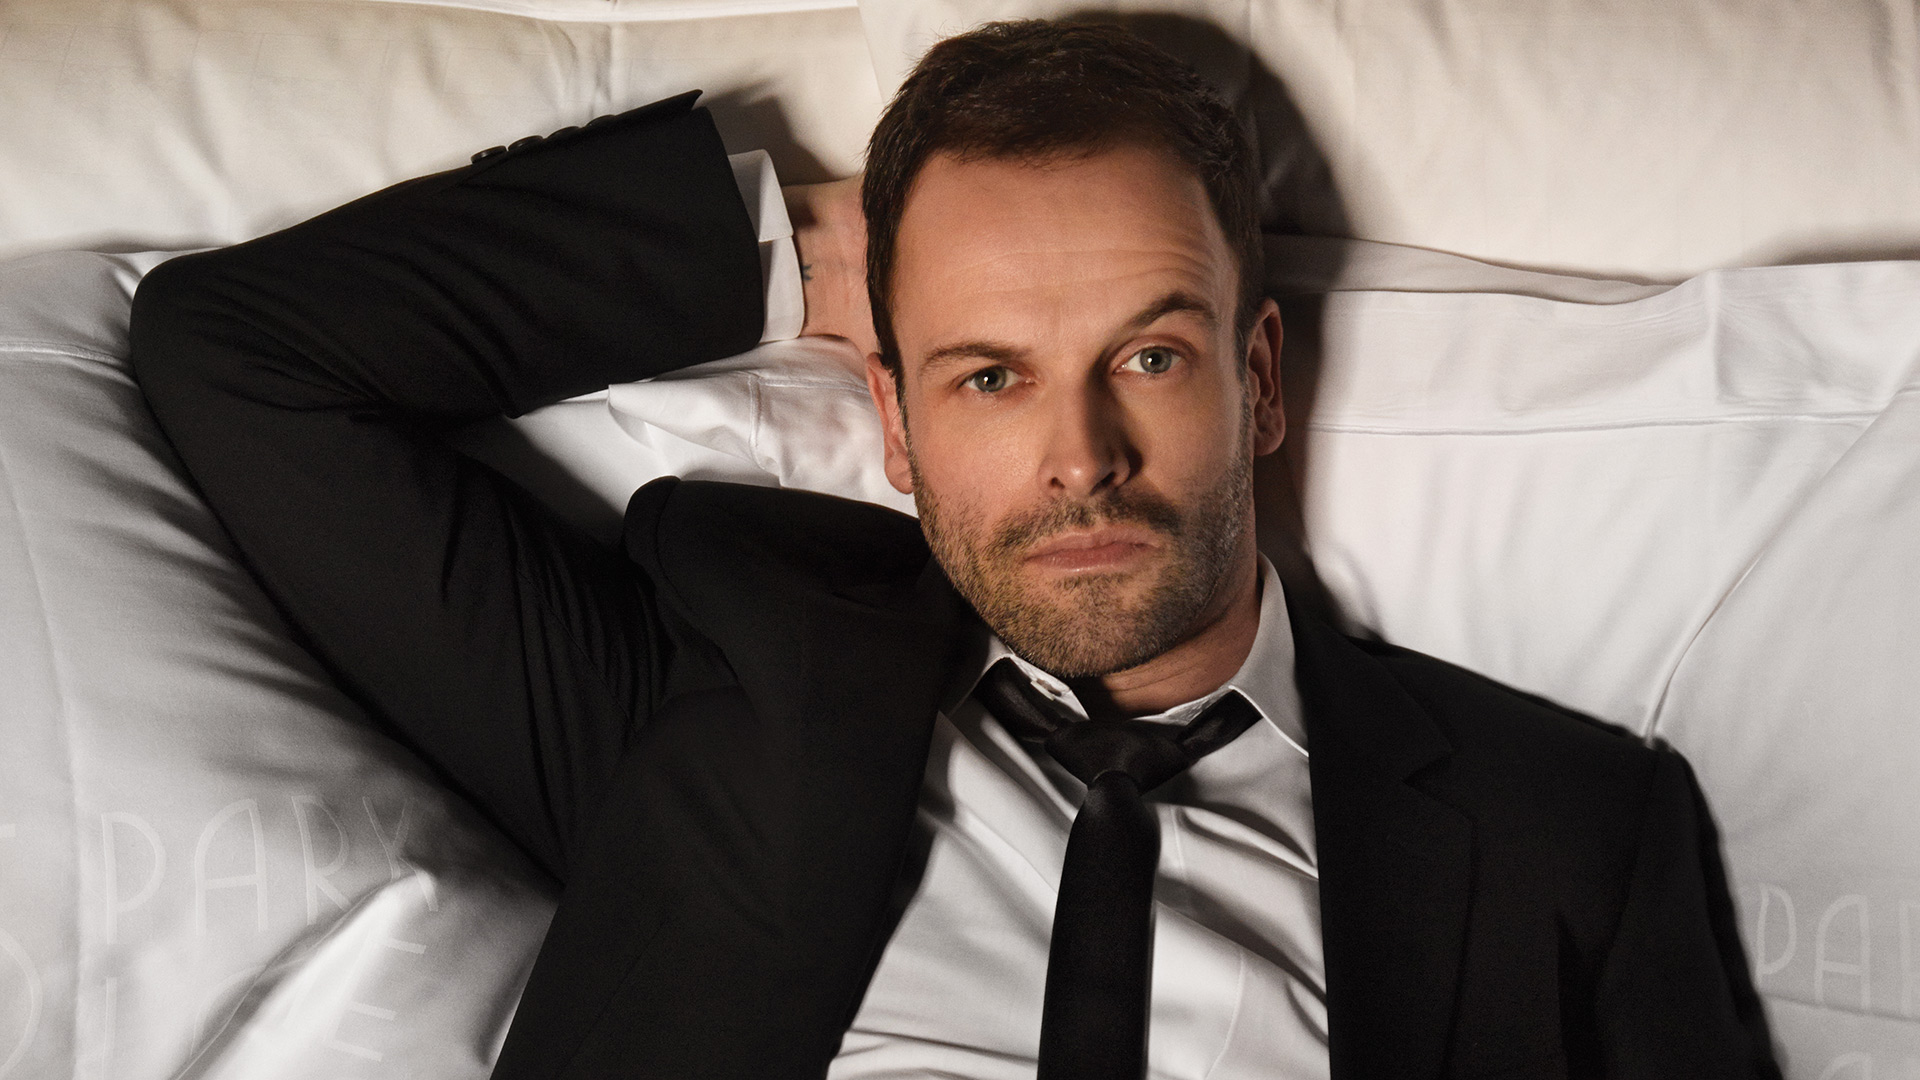 Jonny Lee Miller stretches out in bed